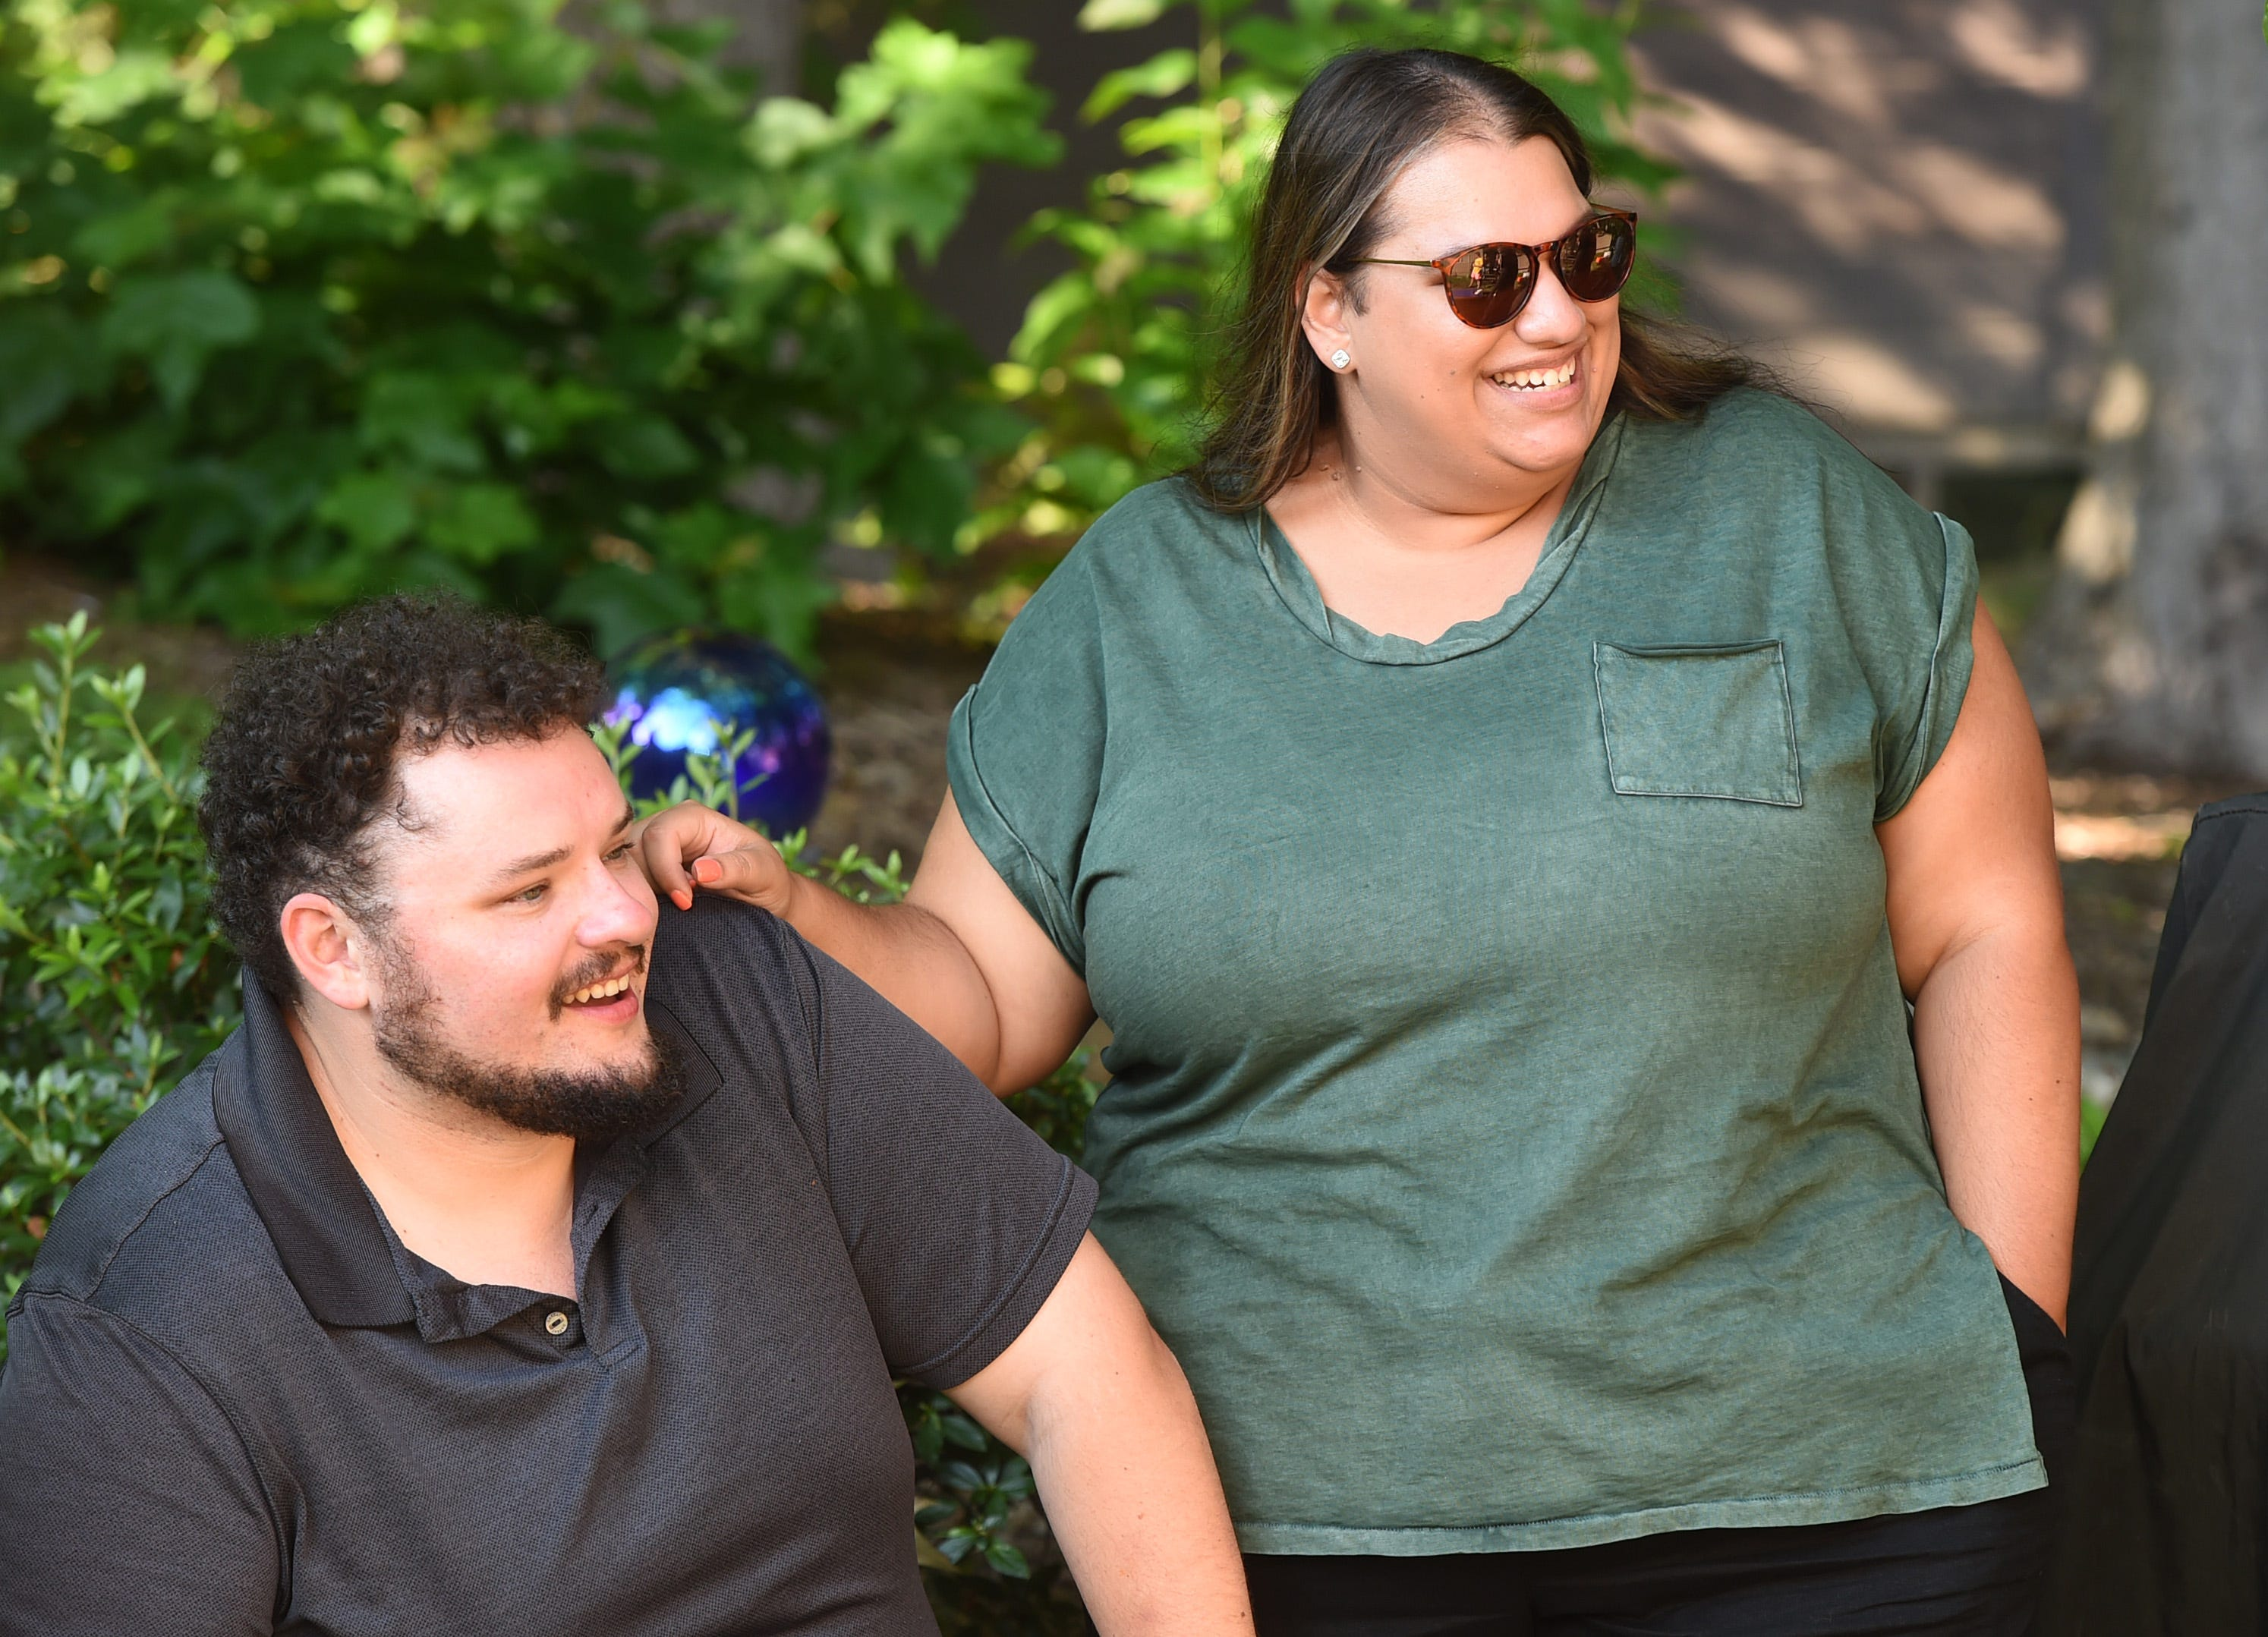 Recently married, Theresa Walker of Erie and her husband, Ethan Walker, attend a family gathering July 3 in Millcreek Township.